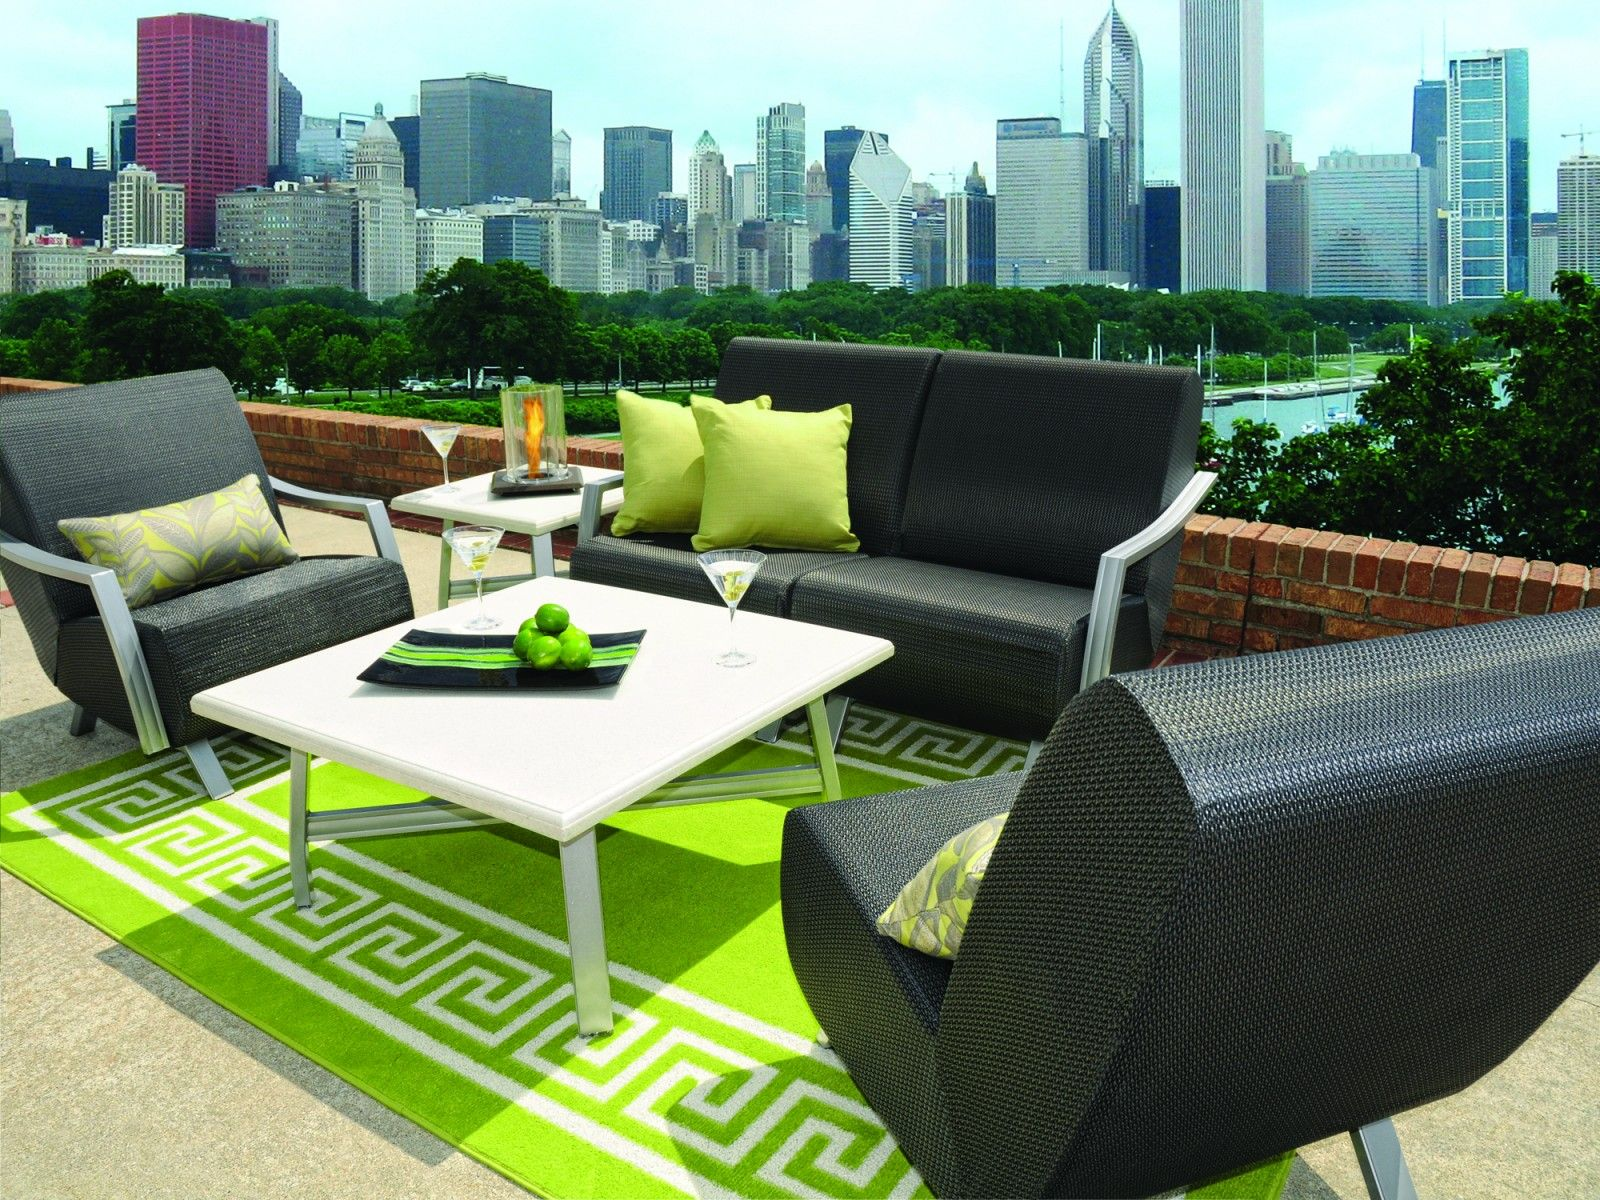 Comfortable Garden Furniture Design Comfortable Patio Furniture Outdoor Cushions Patio Furniture Patio Furniture Cushions